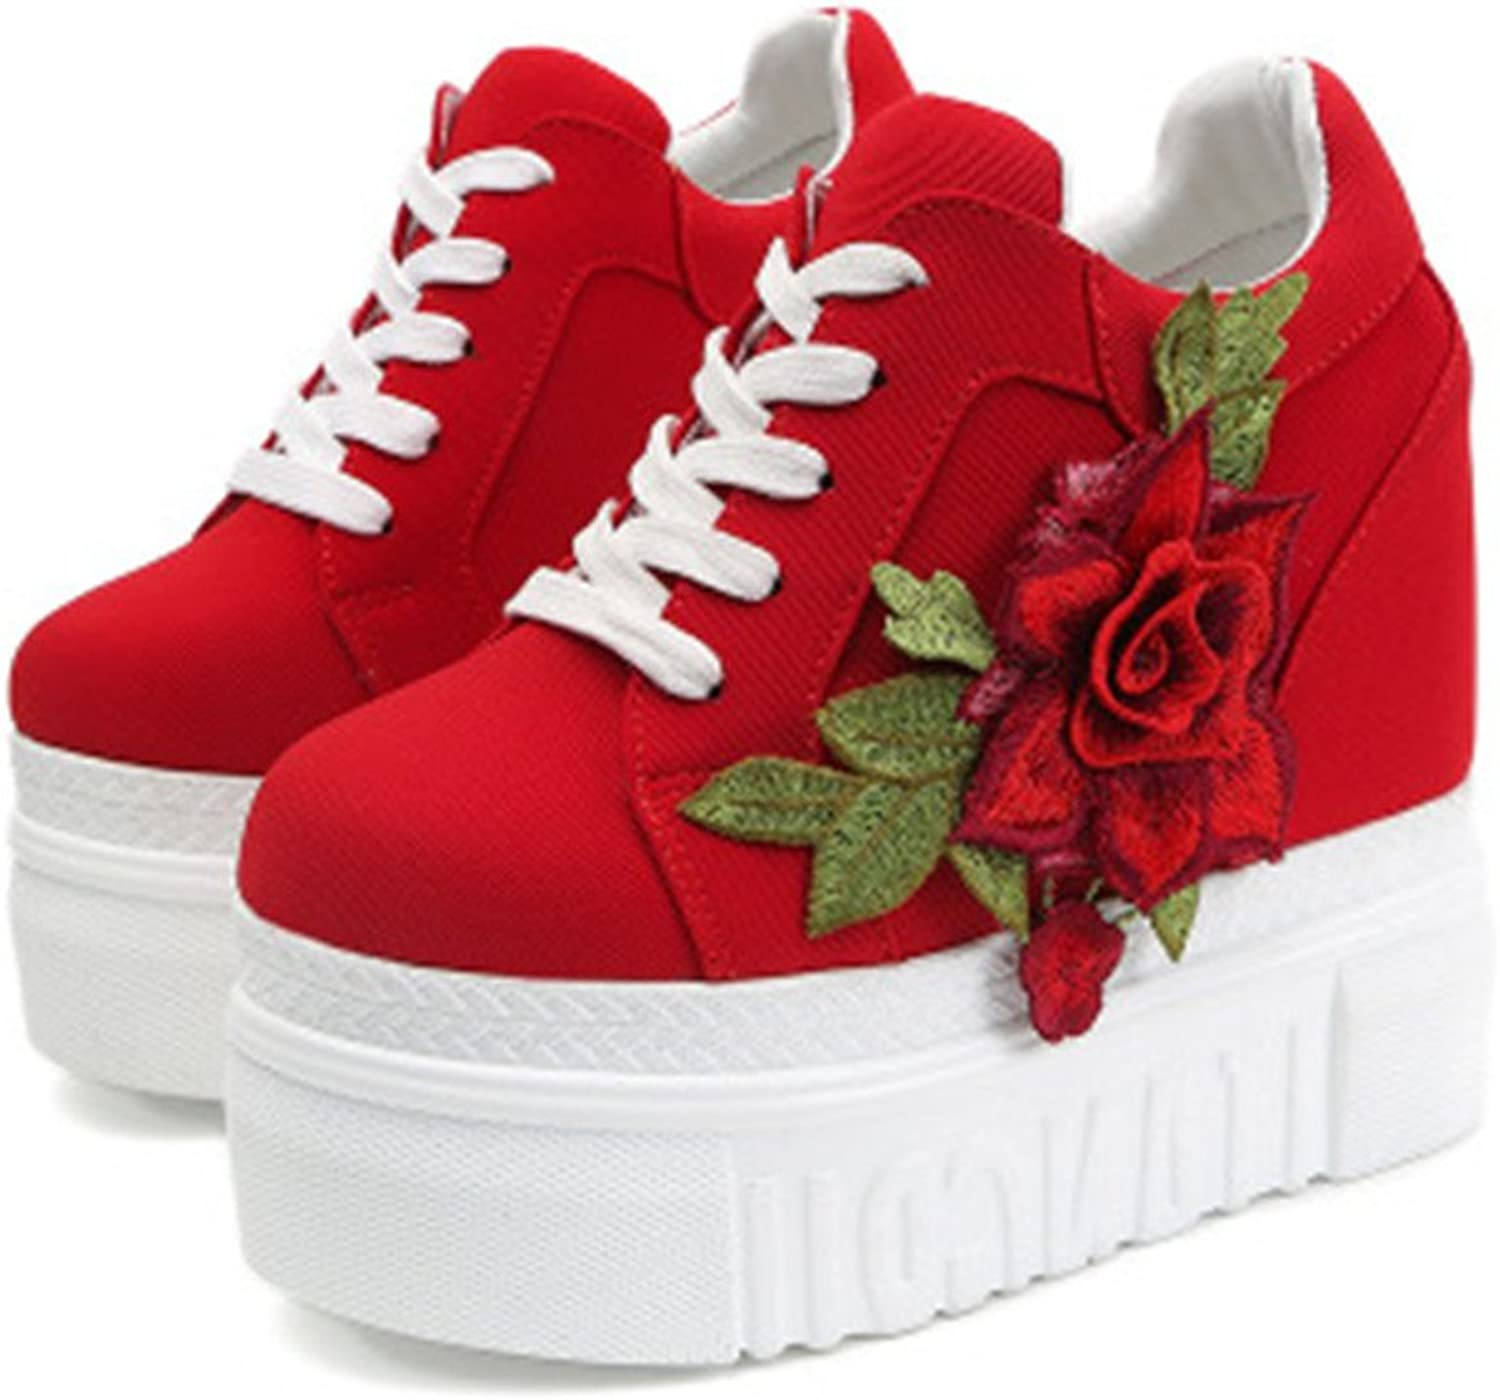 Edv0d2v266 Women's Sneaker High-Heeled Fashion Canvas shoes High Pump Lace UP Wedges Casual Canvas shoes